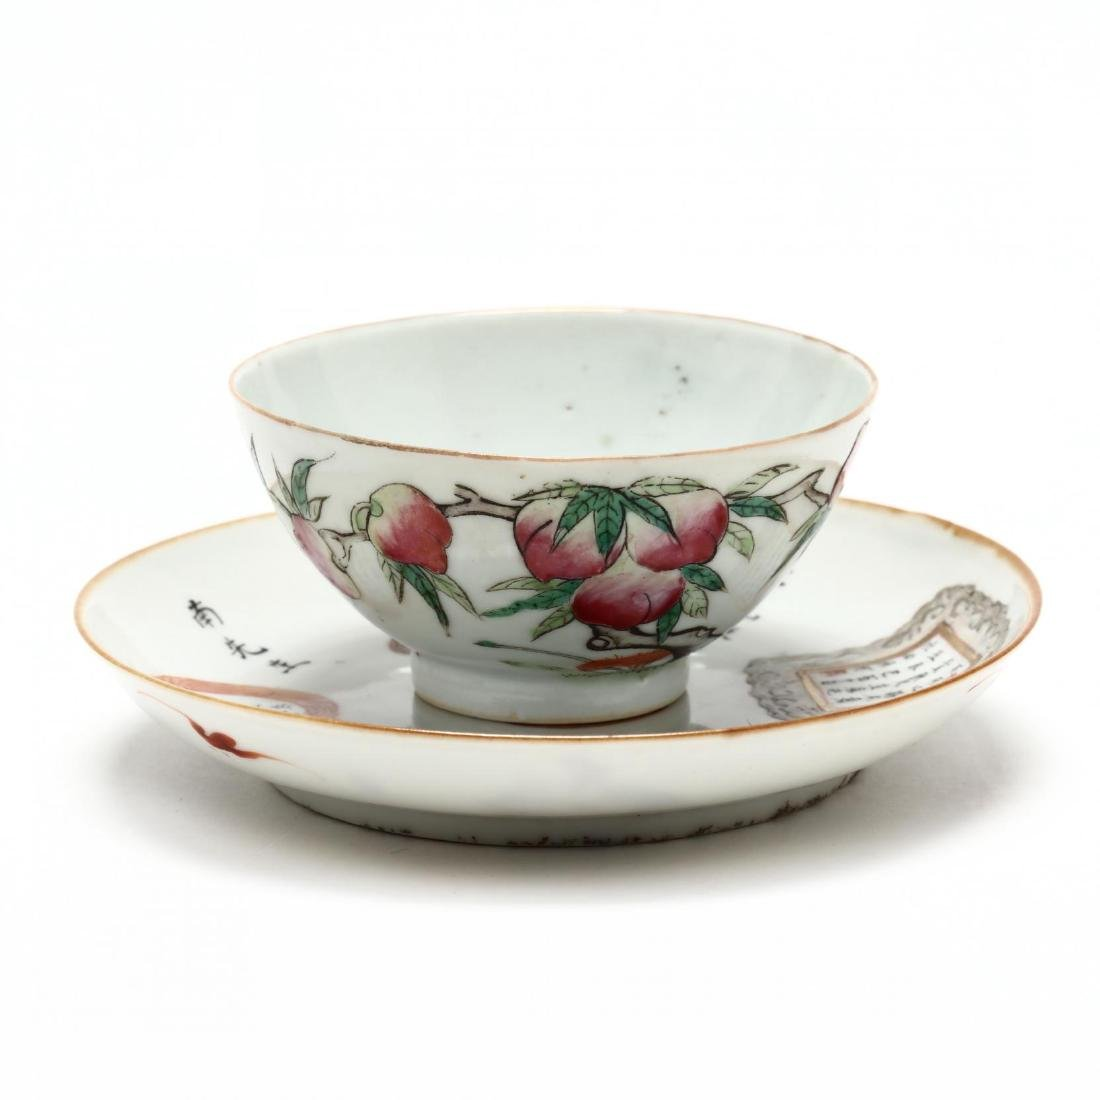 A Chinese Porcelain Export Tea Bowl and Saucer